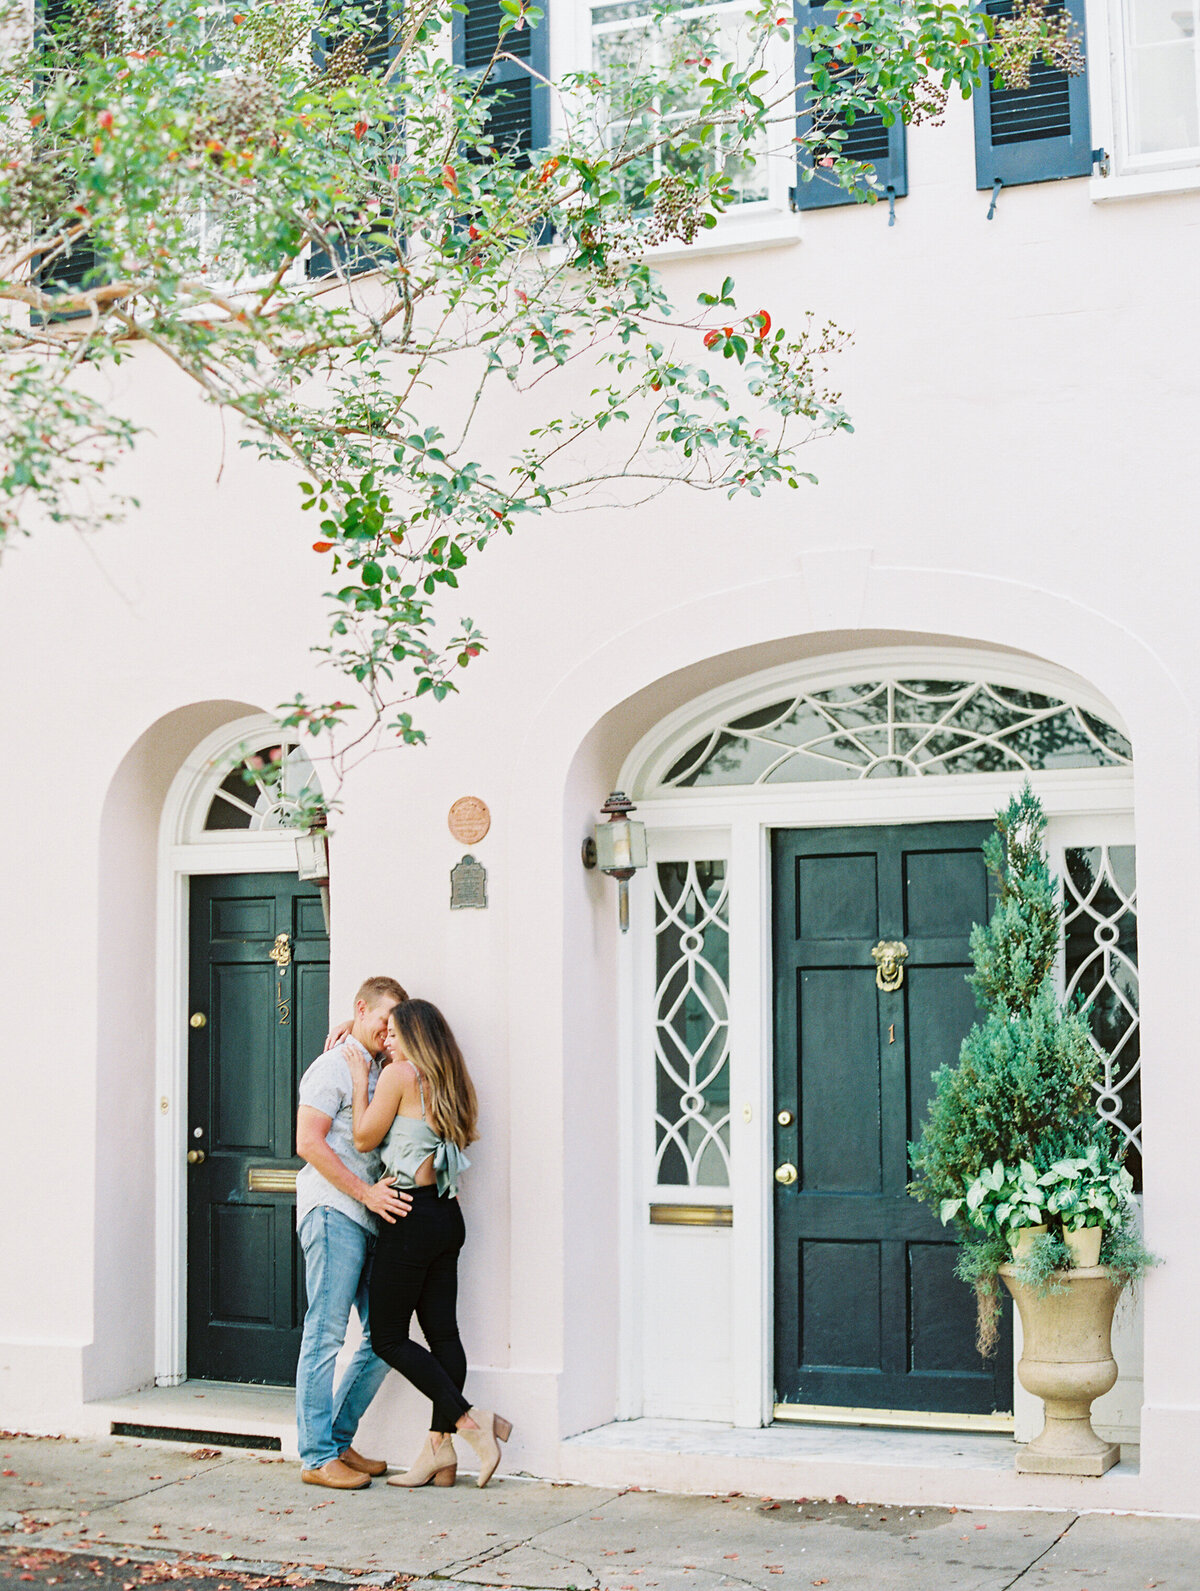 Charleston Wedding Photographer | Savannah Wedding Photographer | Beaufort Wedding Photographer | Hilton Head Island Wedding Photographer | San Luis Obispo Wedding Photographer | Santa Barbara Wedding Photographer _ ARP -24